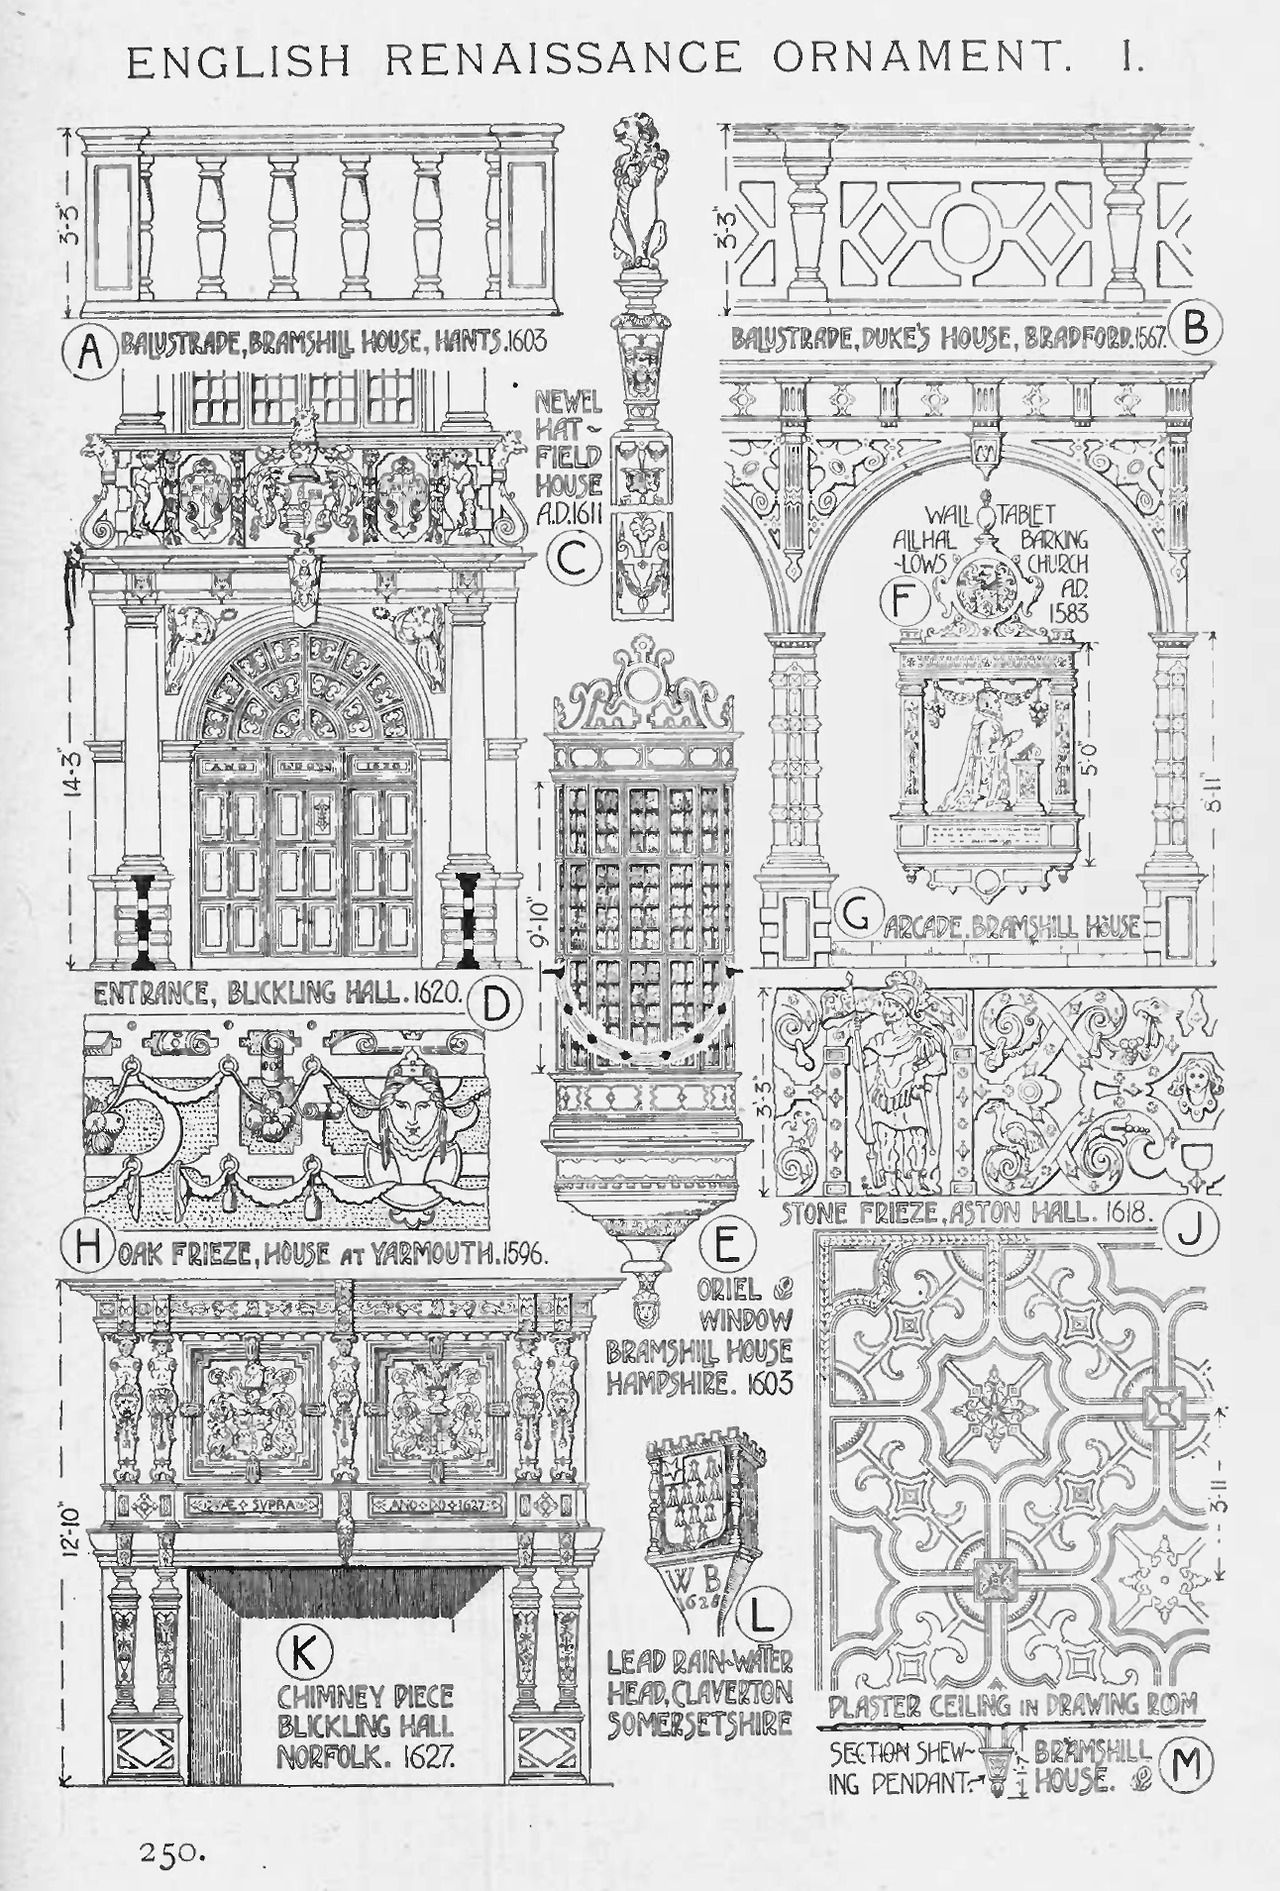 Best Kitchen Gallery: English Renaissance Ornaments A History Of Architecture On The of English Renaissance Architecture on rachelxblog.com